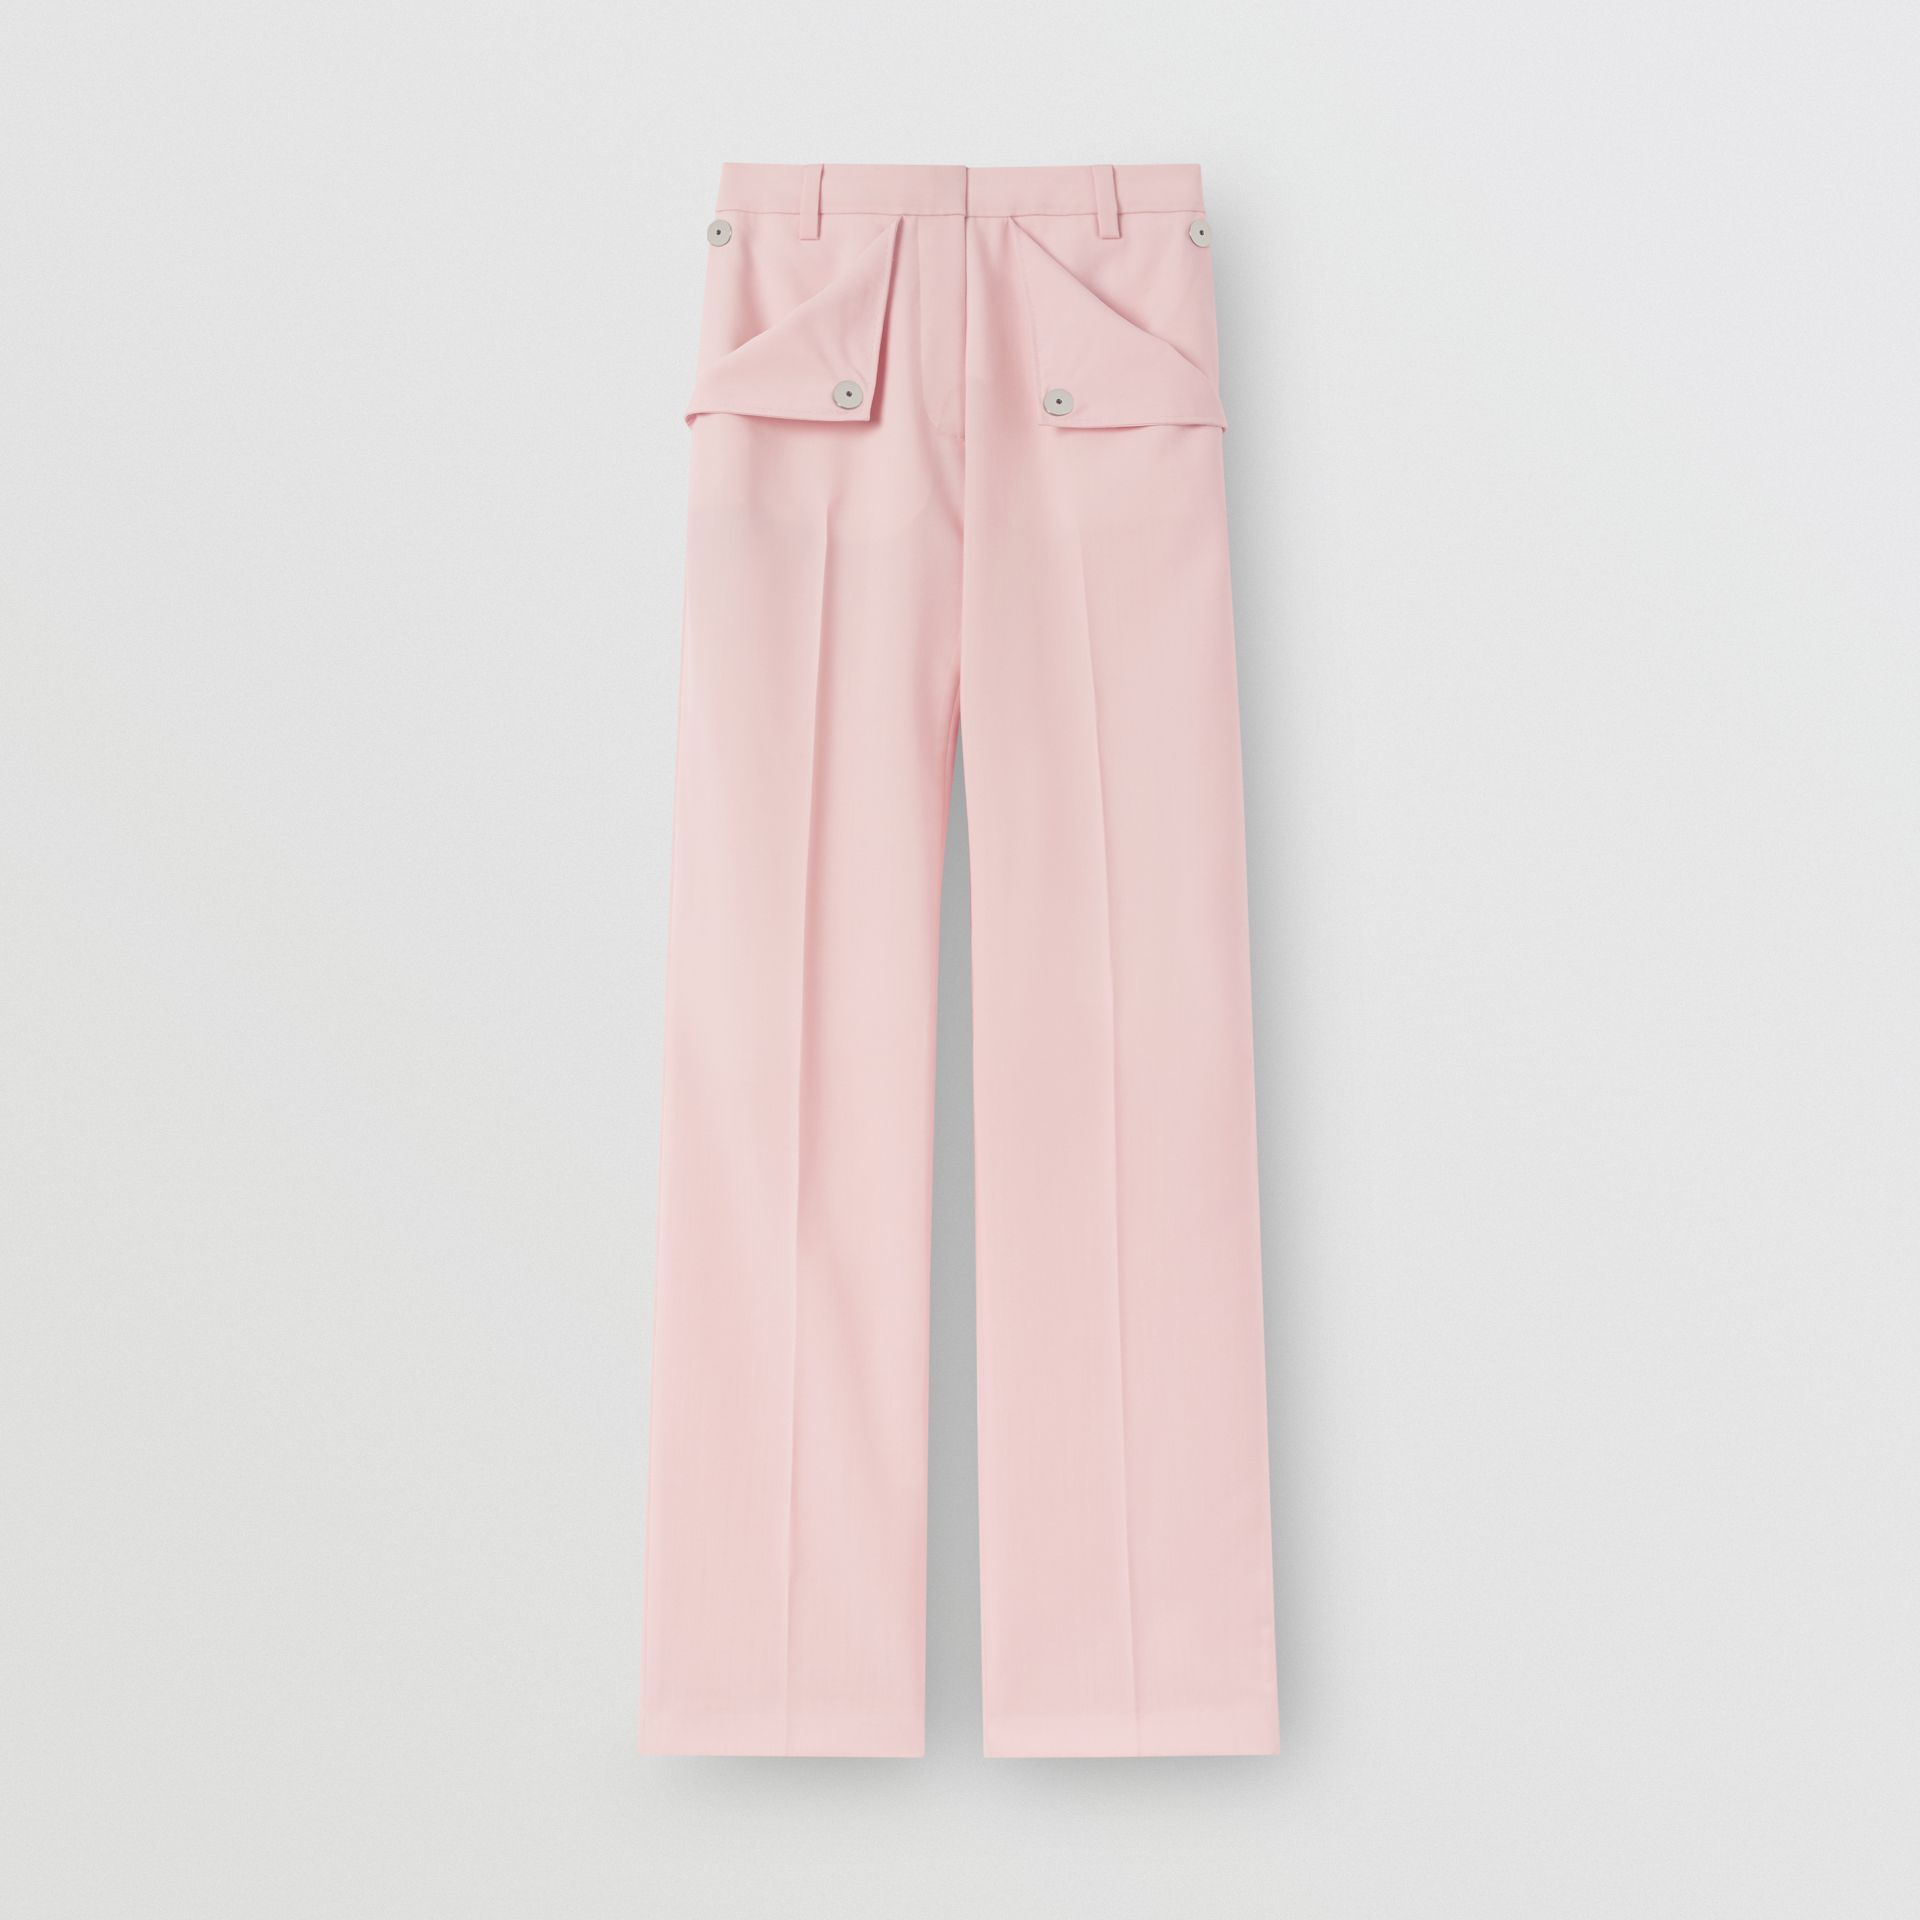 Pocket Detail Tumbled Wool Tailored Trousers in Soft Pink | Burberry United Kingdom - gallery image 5